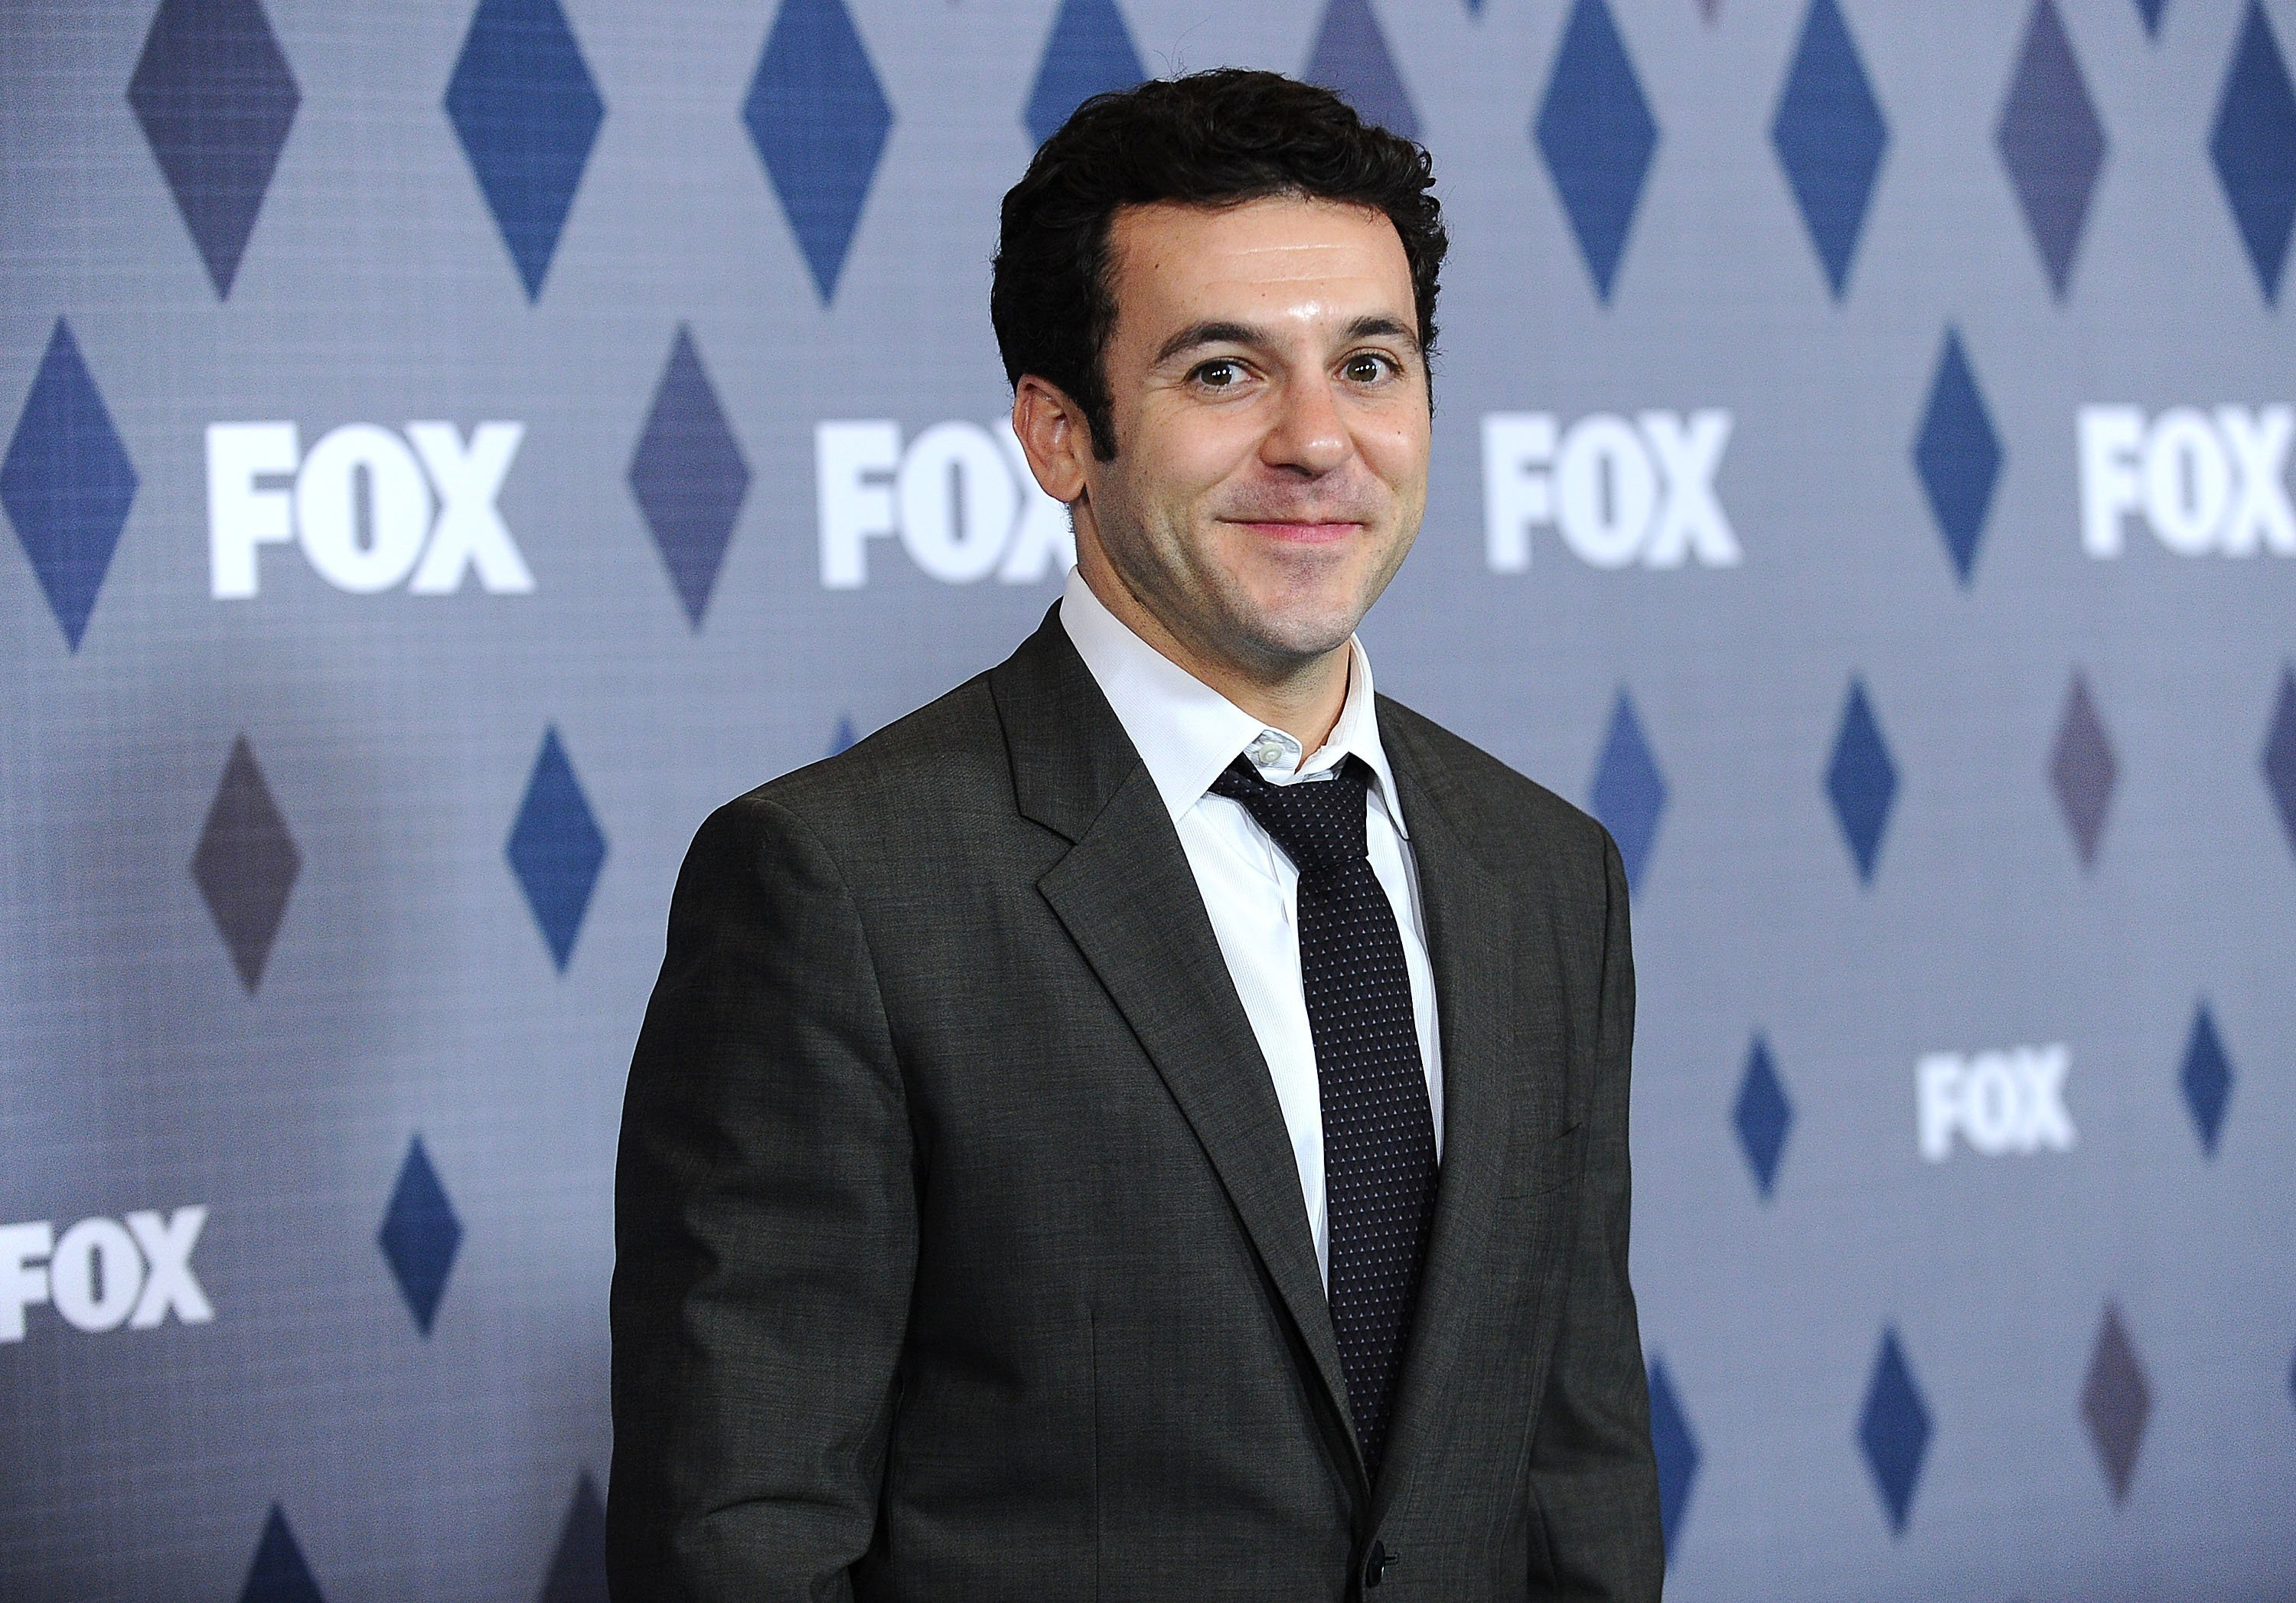 Fred Savage on January 15, 2016 in Pasadena, California | Source: Getty Images